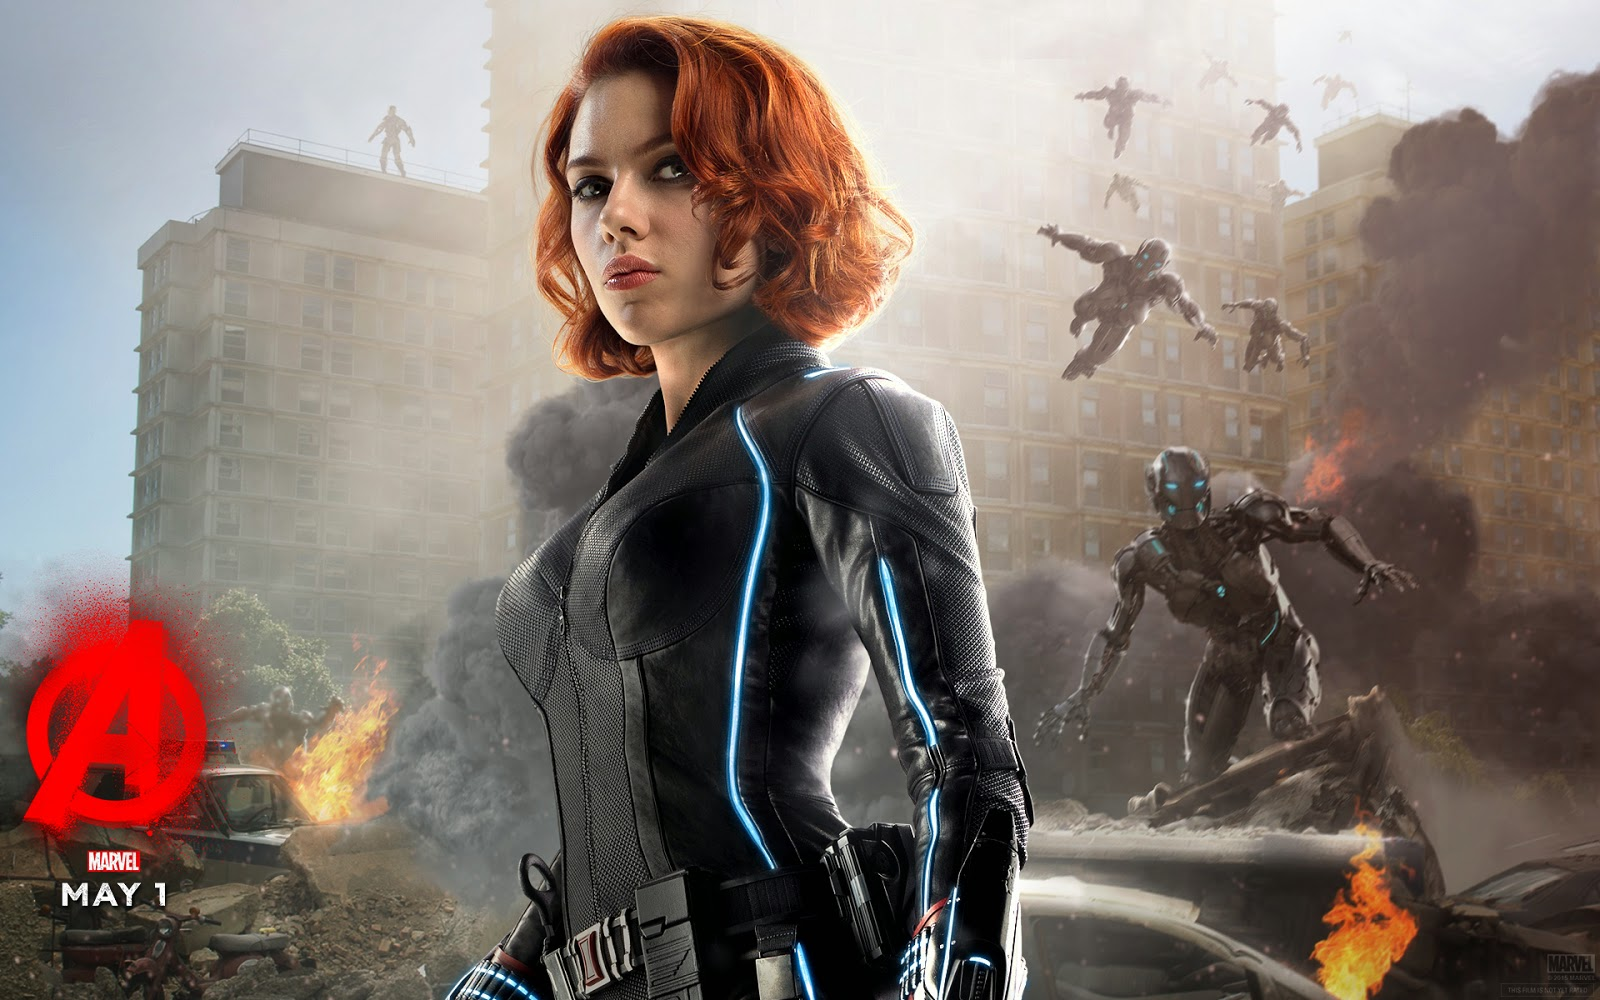 Black Widow Avenger Age of Ultron Wallpaper 1600x1000